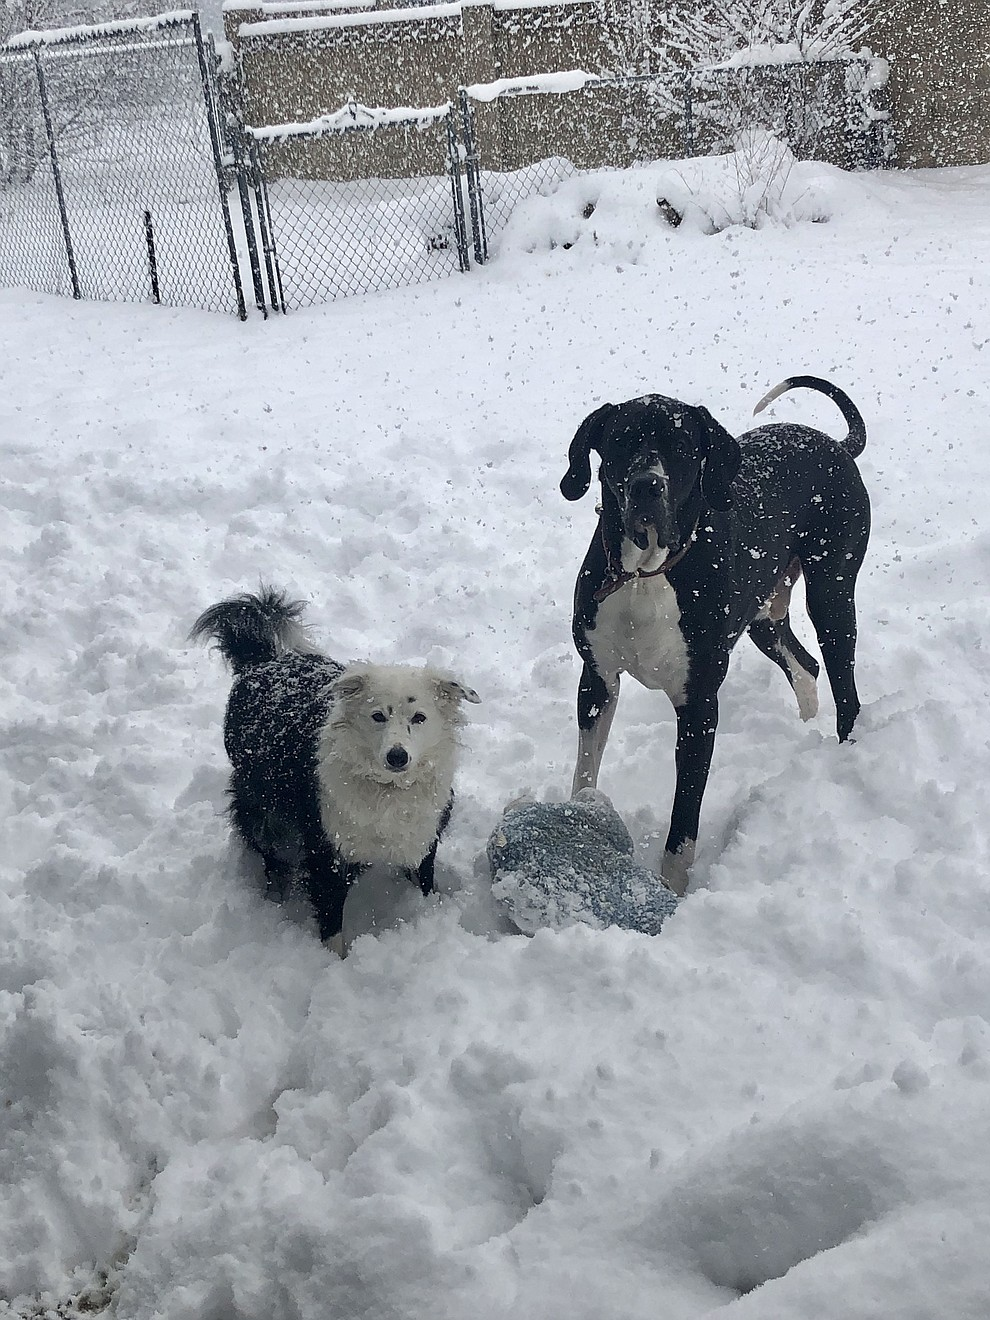 Our dogs enjoying their snow day on February 21, 2019. (Marissa Busk)